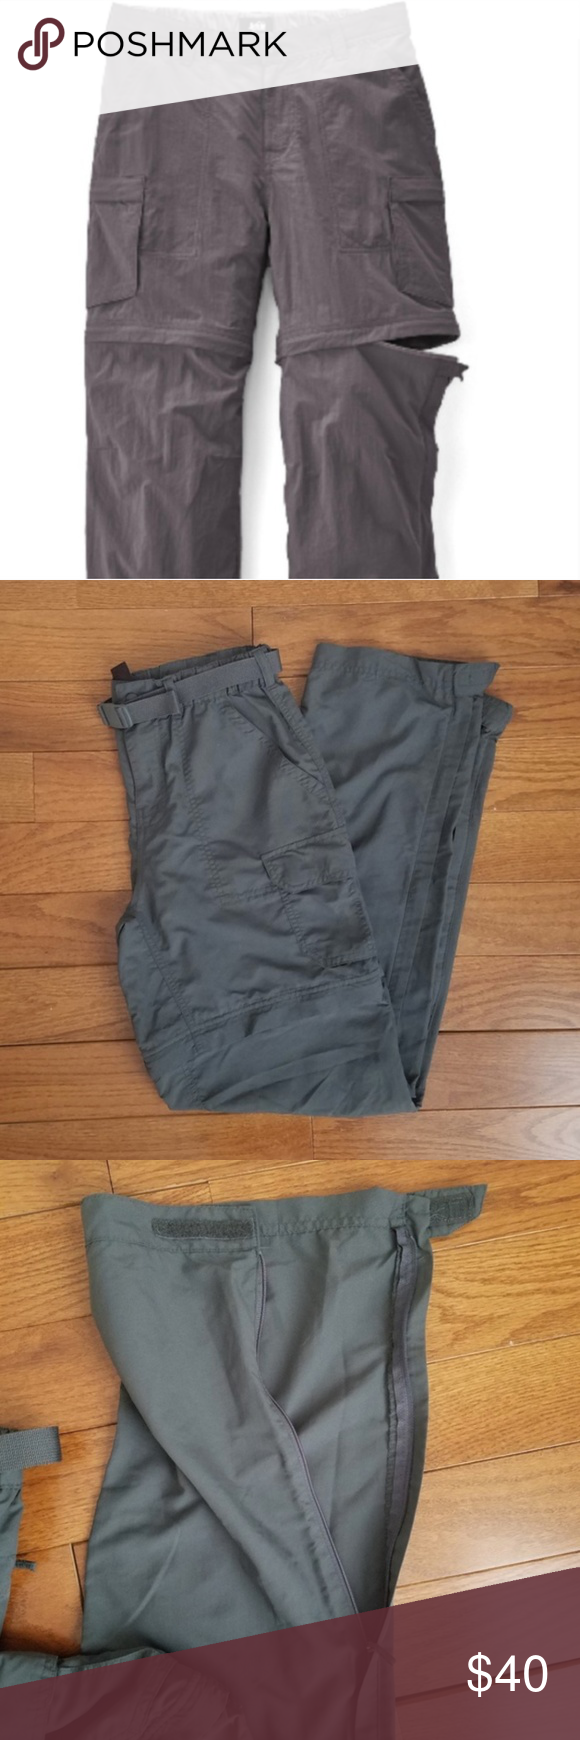 2dde94b8ab REI Co-op Sahara Grey Convertible Pants - Size 4 Converts from pants to  shorts